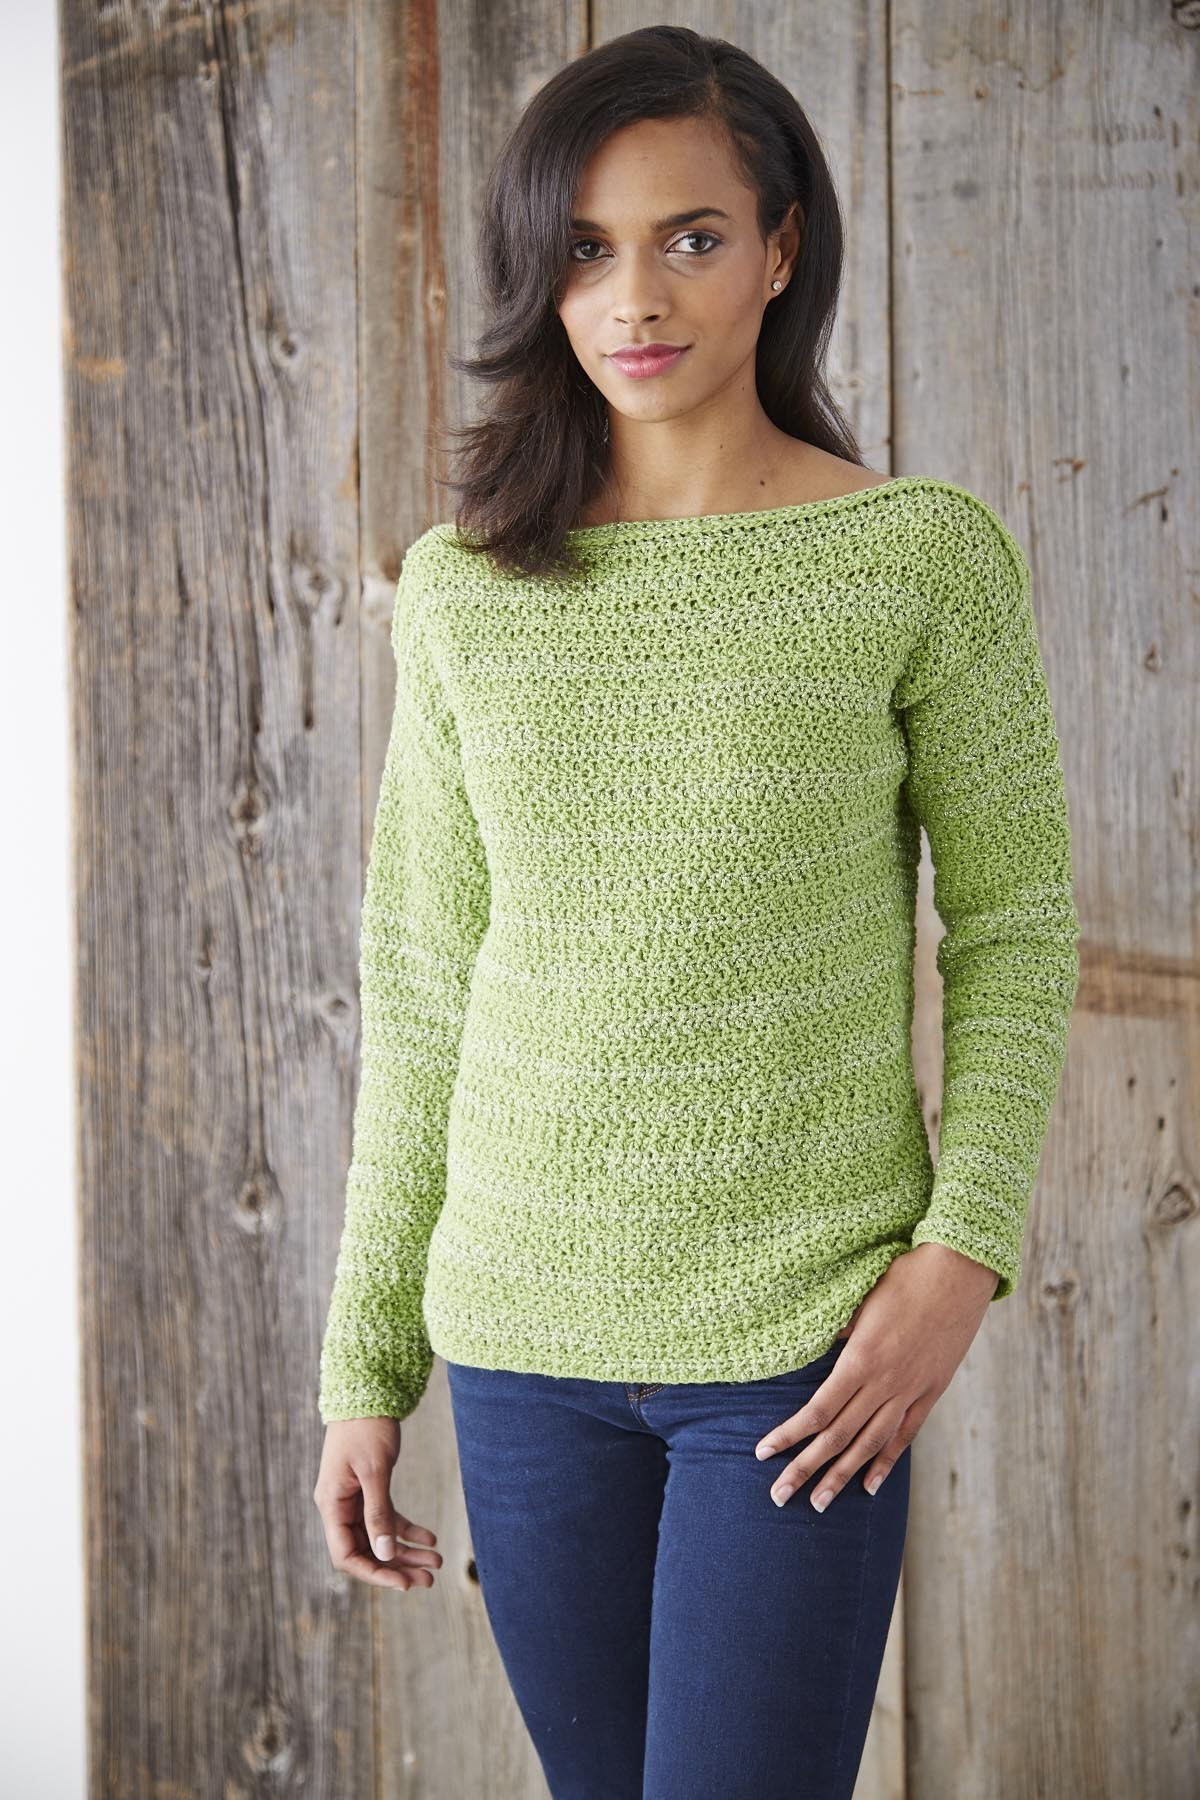 Cardigan Pattern Unique Easy Crochet Women S Sweater Pattern Crochet and Knit Of Superb 46 Images Cardigan Pattern